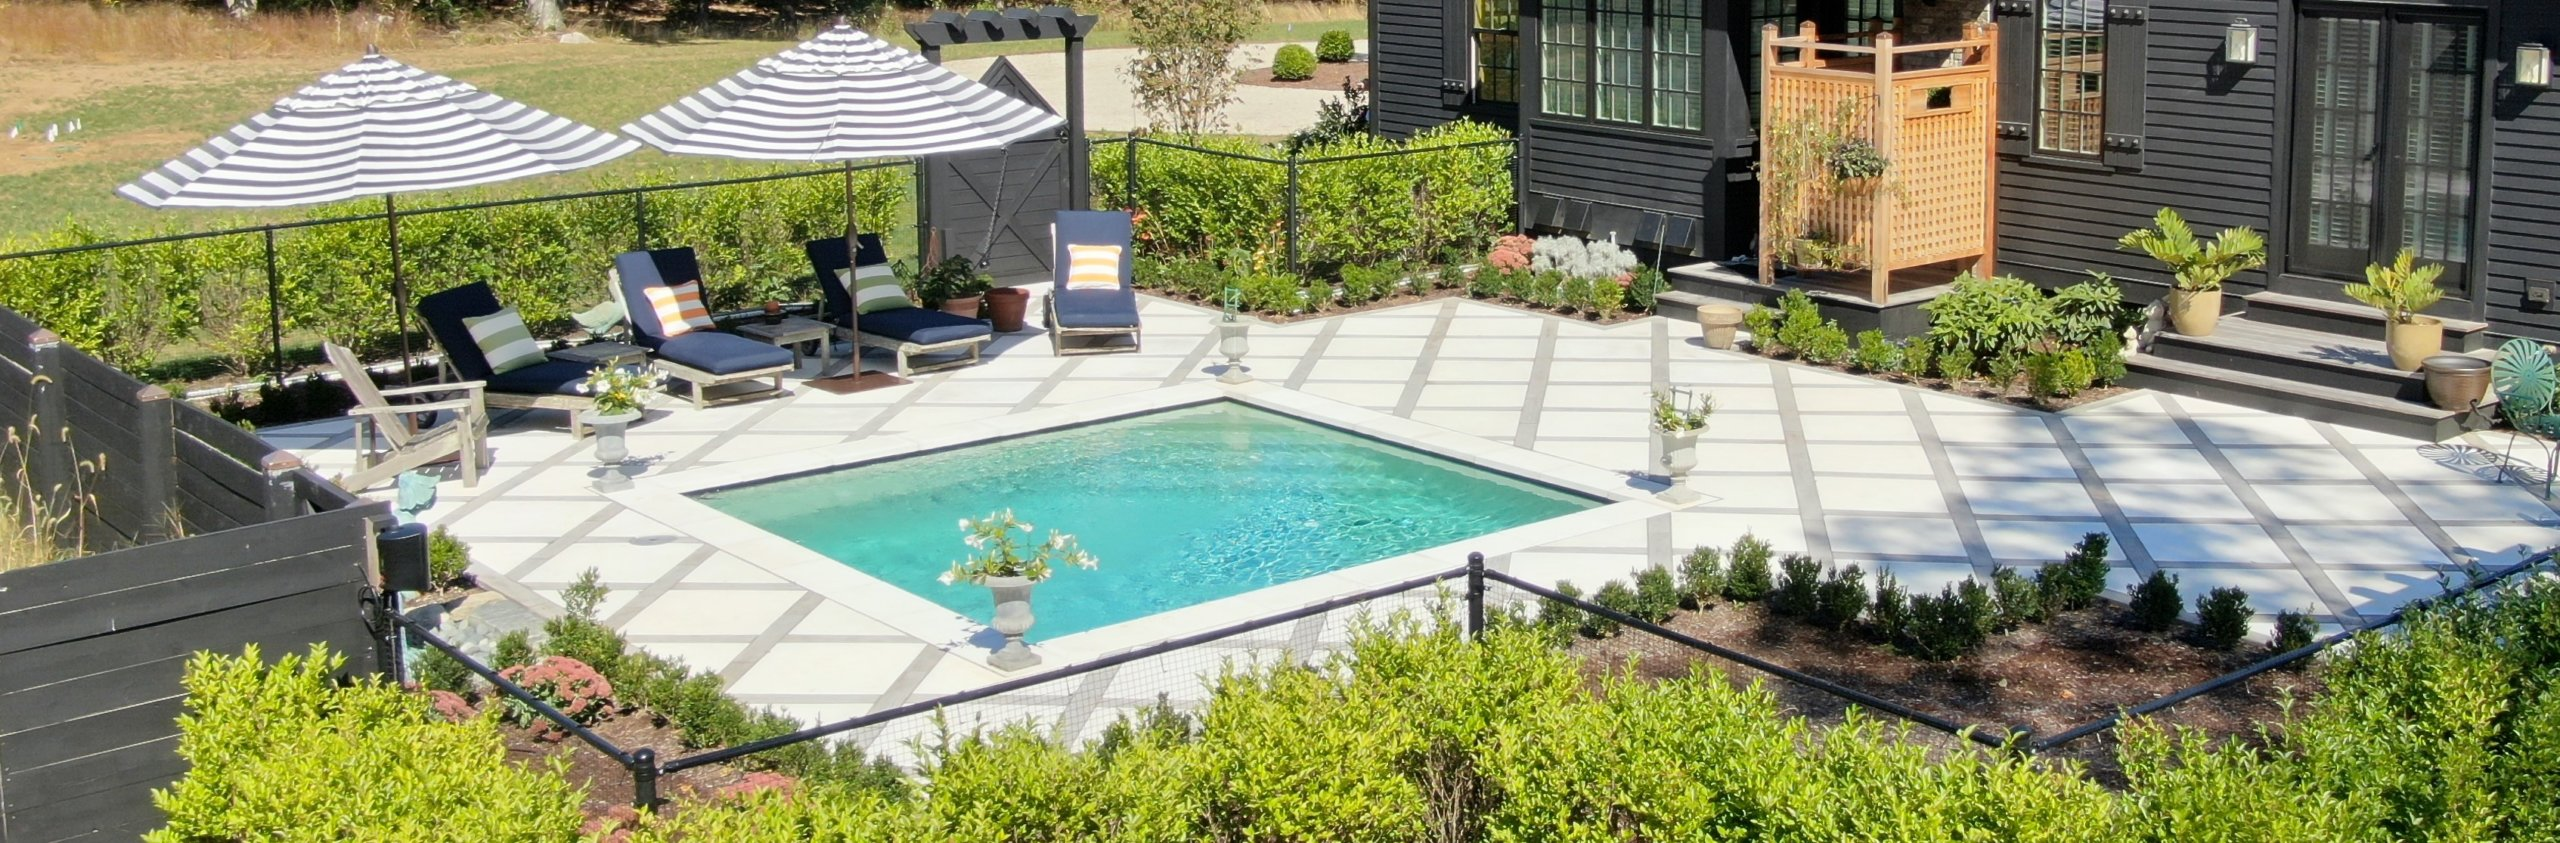 square inground gunite pool ct